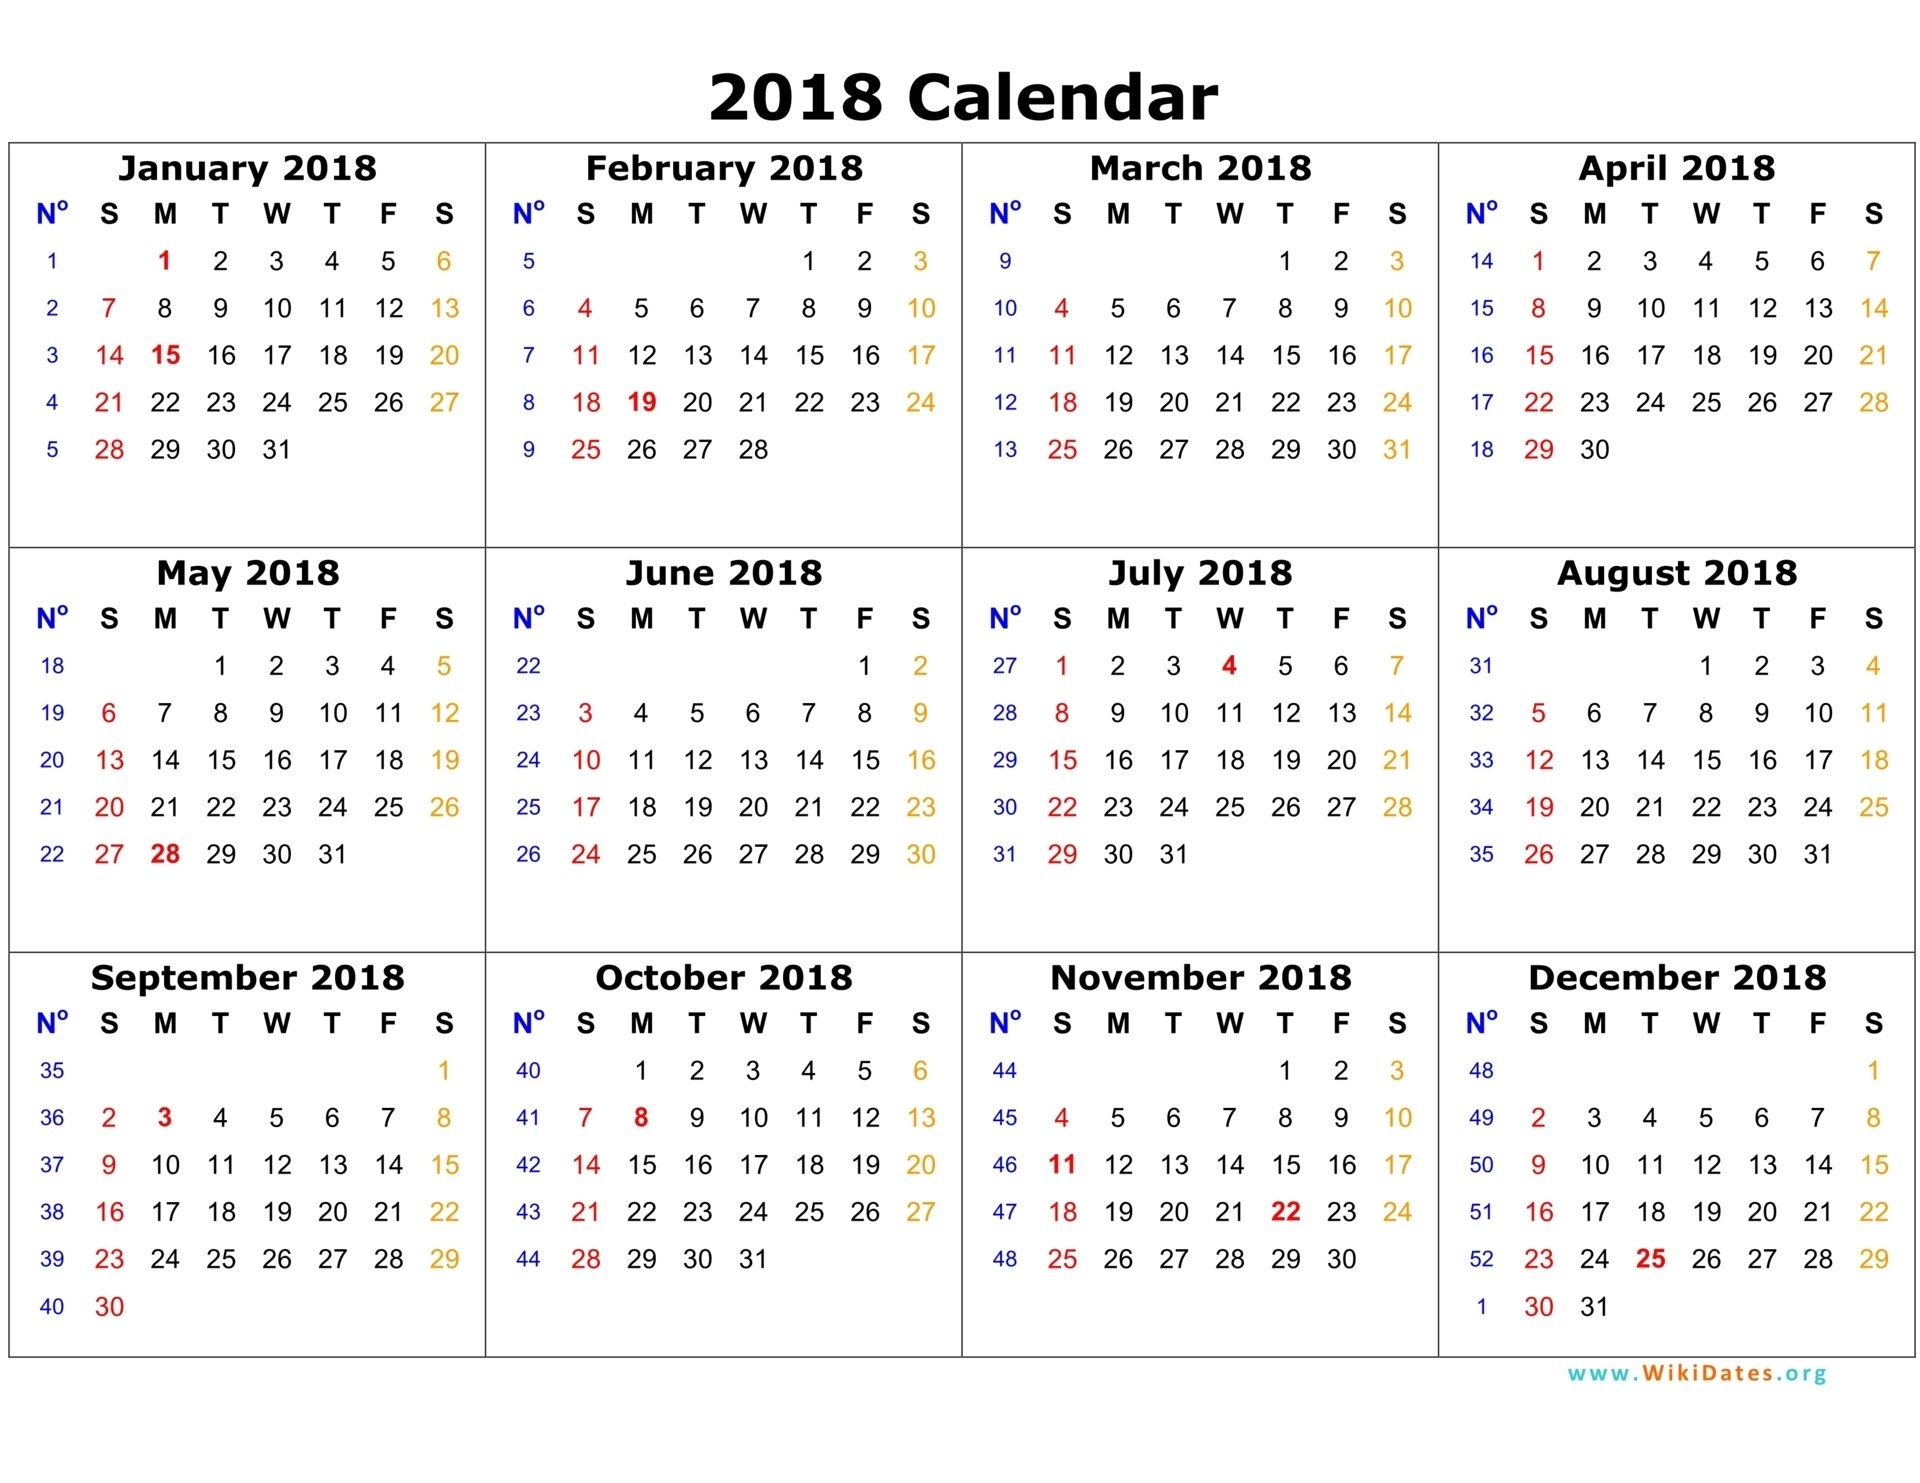 2018 Calendar Template | Monthly Printable Calendar within Printable Calendar 2018 Pdf